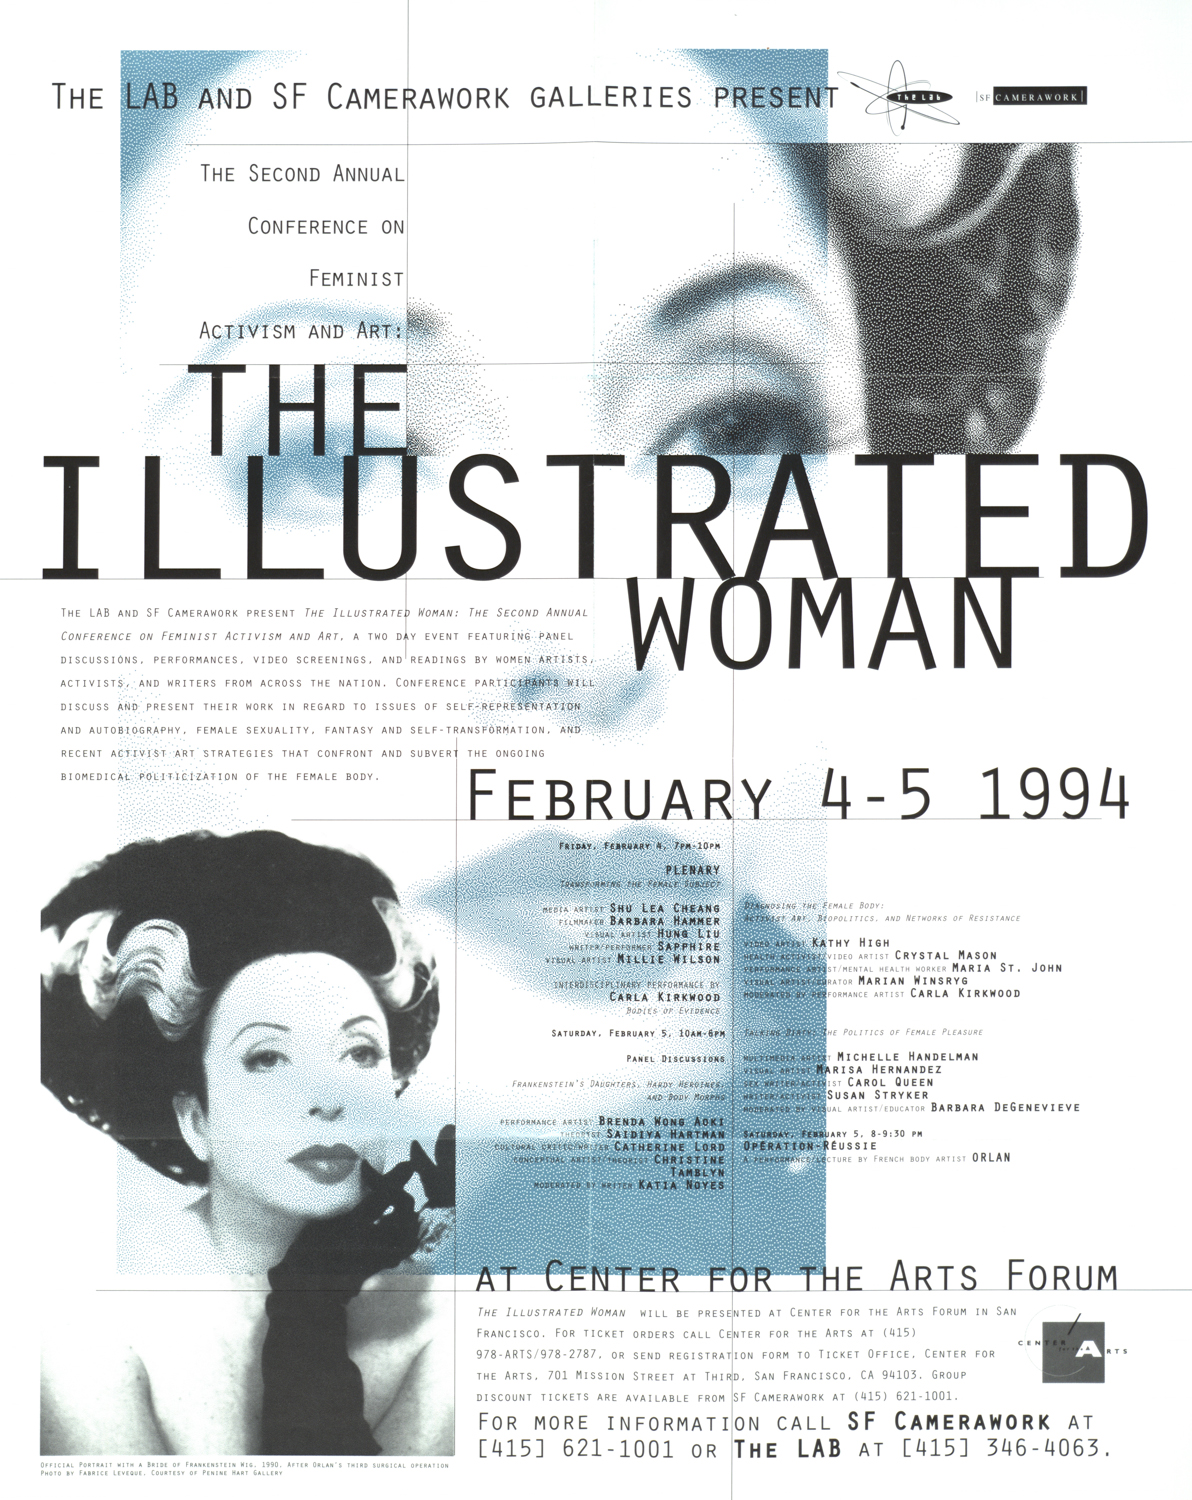 SF Camerawork, 1994: Poster for Feminism conference organized with Laura Brun of The Lab